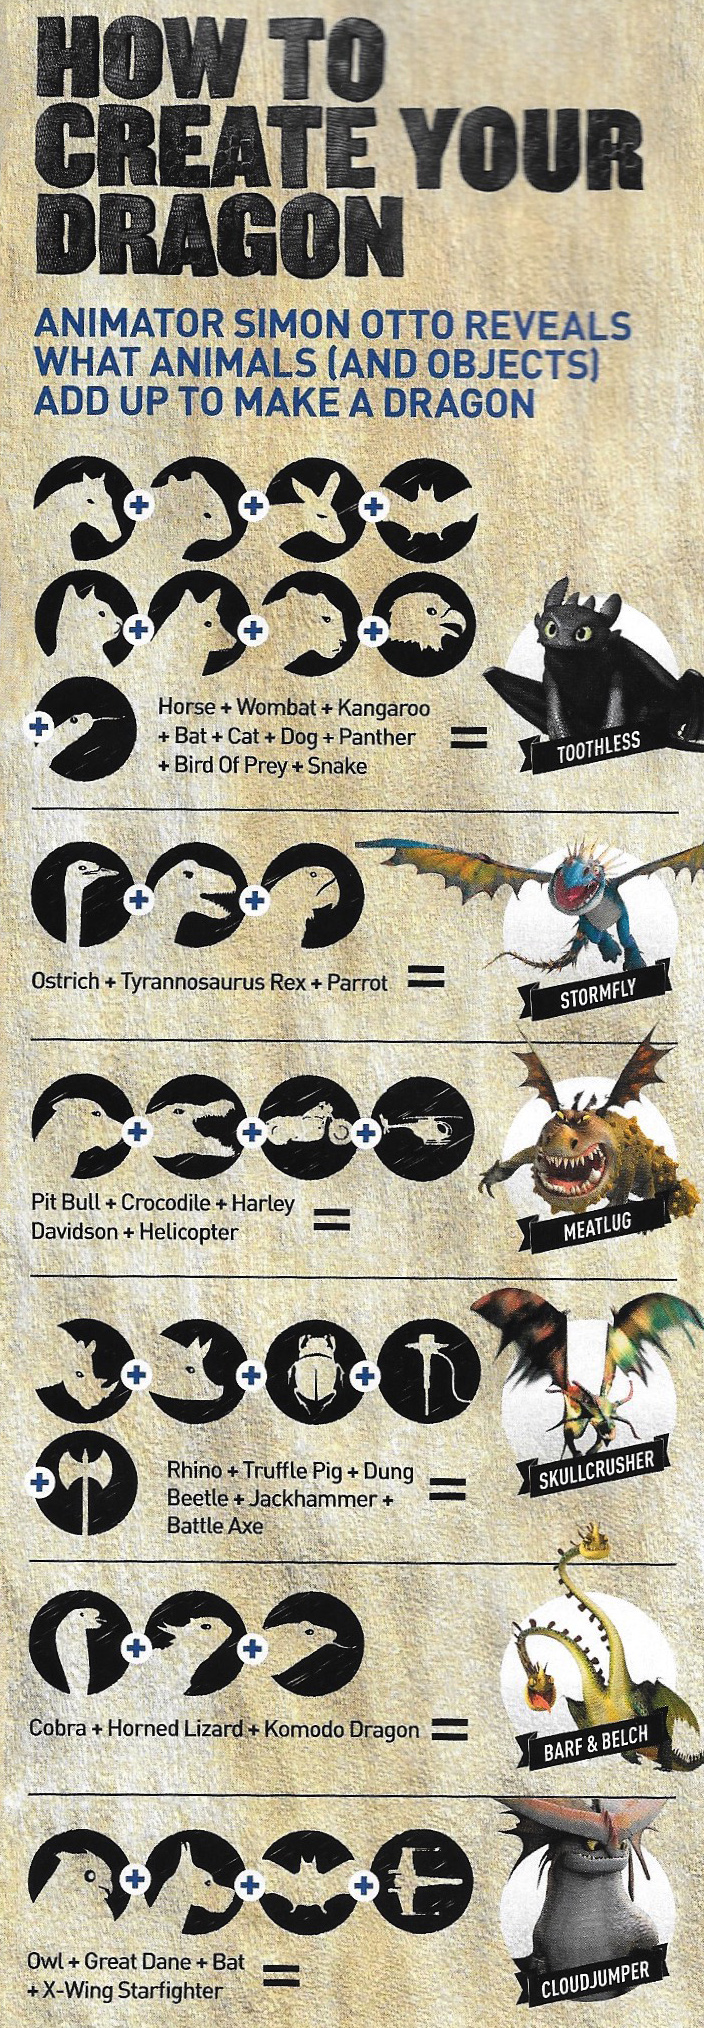 bestiario kind of dragon hot ow to train your dragon best movie not or maybe